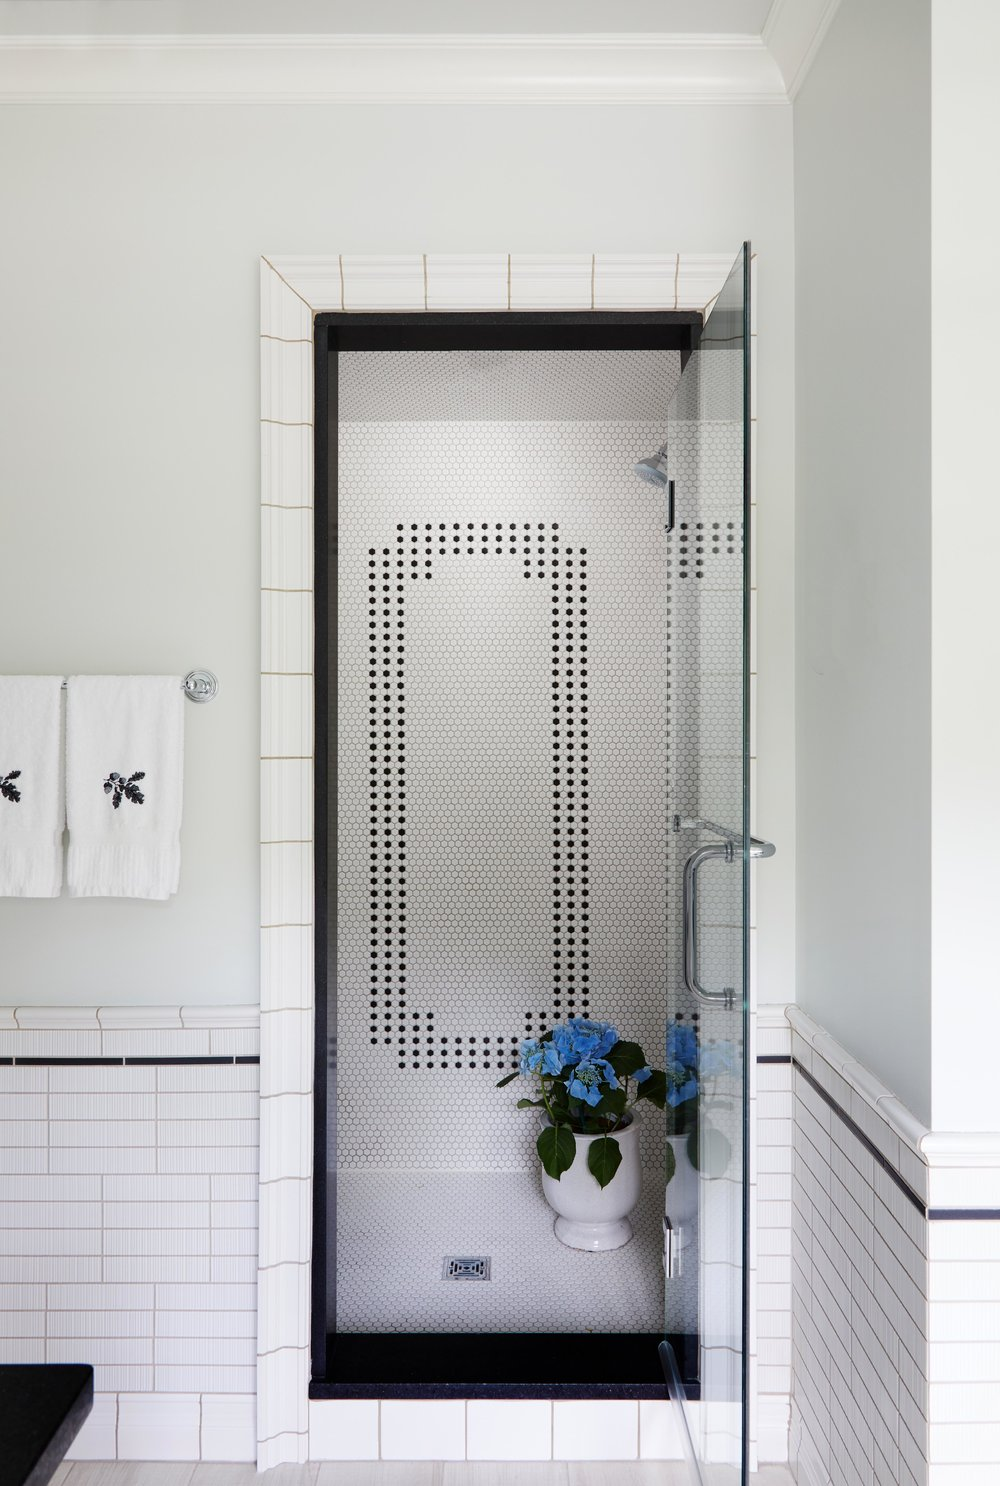 Classic black and whtie bathroom with walk in shower. Come see more interior design inspiration from Elizabeth Drake. Photo by Werner Straube. #interiordesign #classicdesign #traditionaldecor #housetour #elizabethdrake